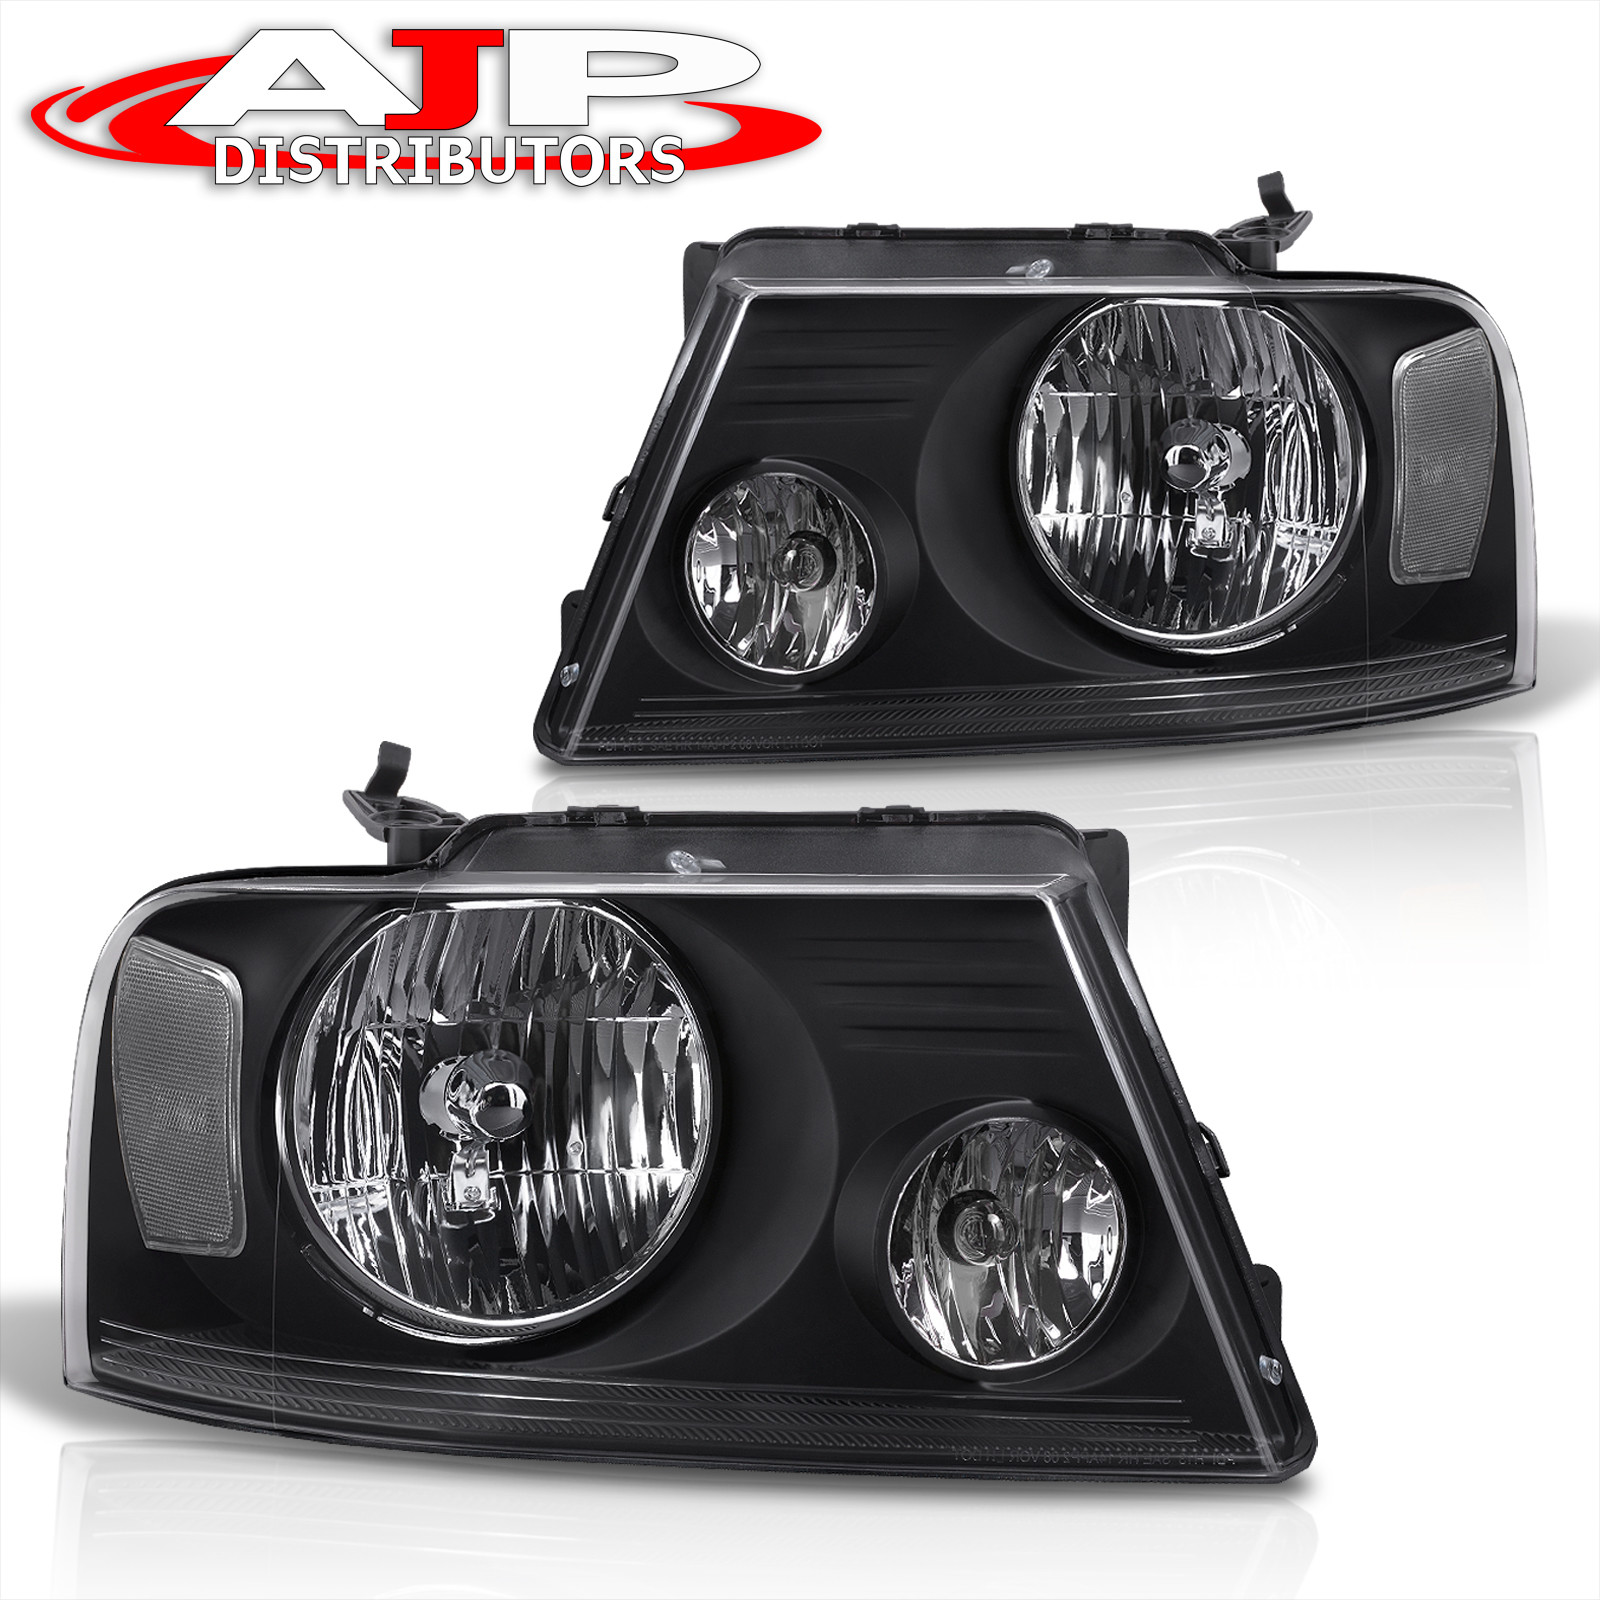 2006 Ford Fusion For Sale >> 2004-2008 FORD F150 PICKUP HEAD LIGHTS HEADLIGHTS BLACK ...